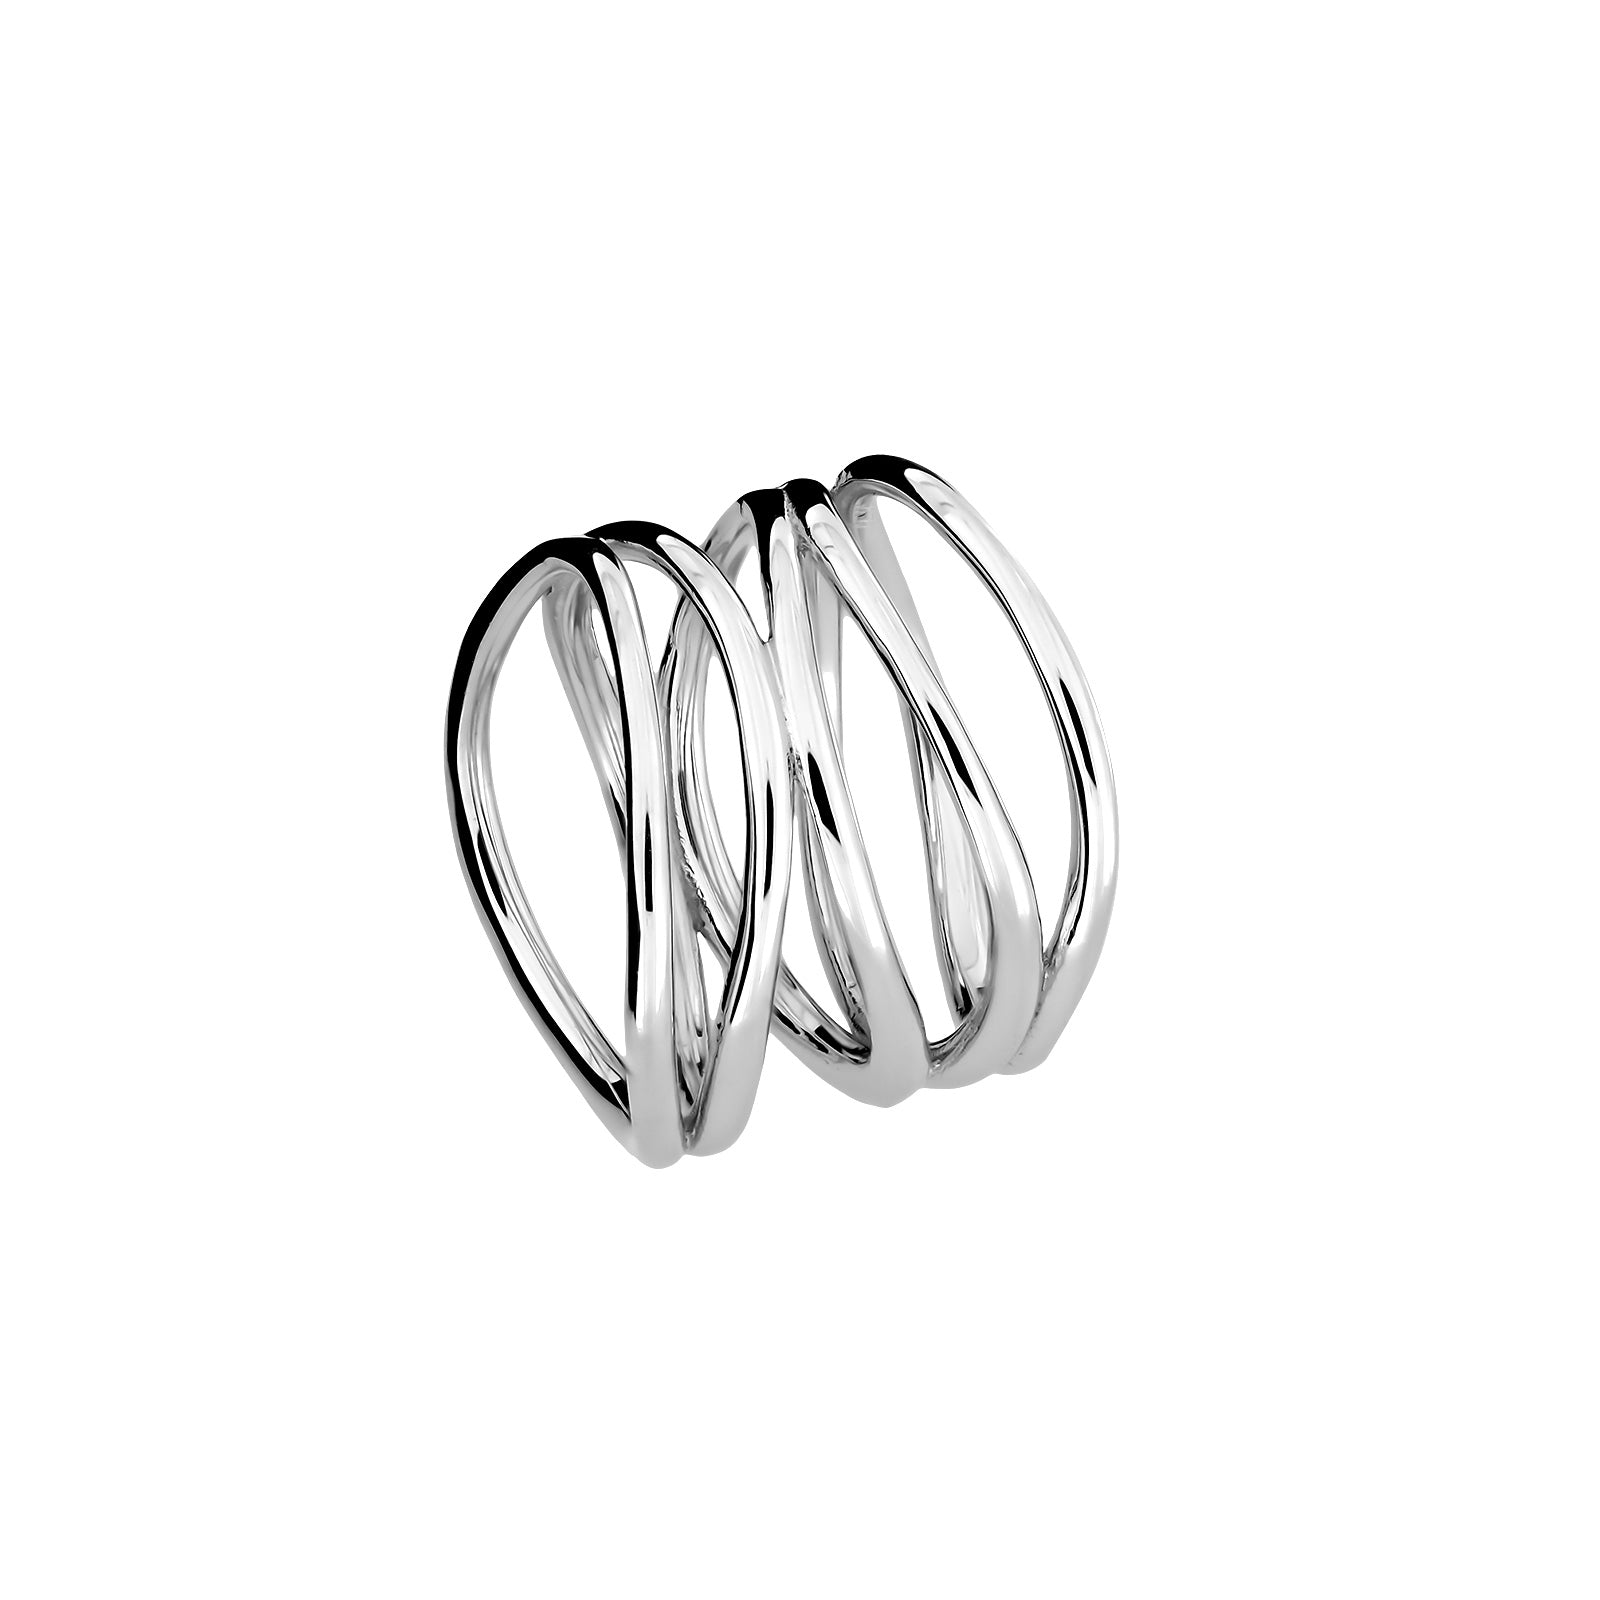 Overlapping Waves Silver Ring